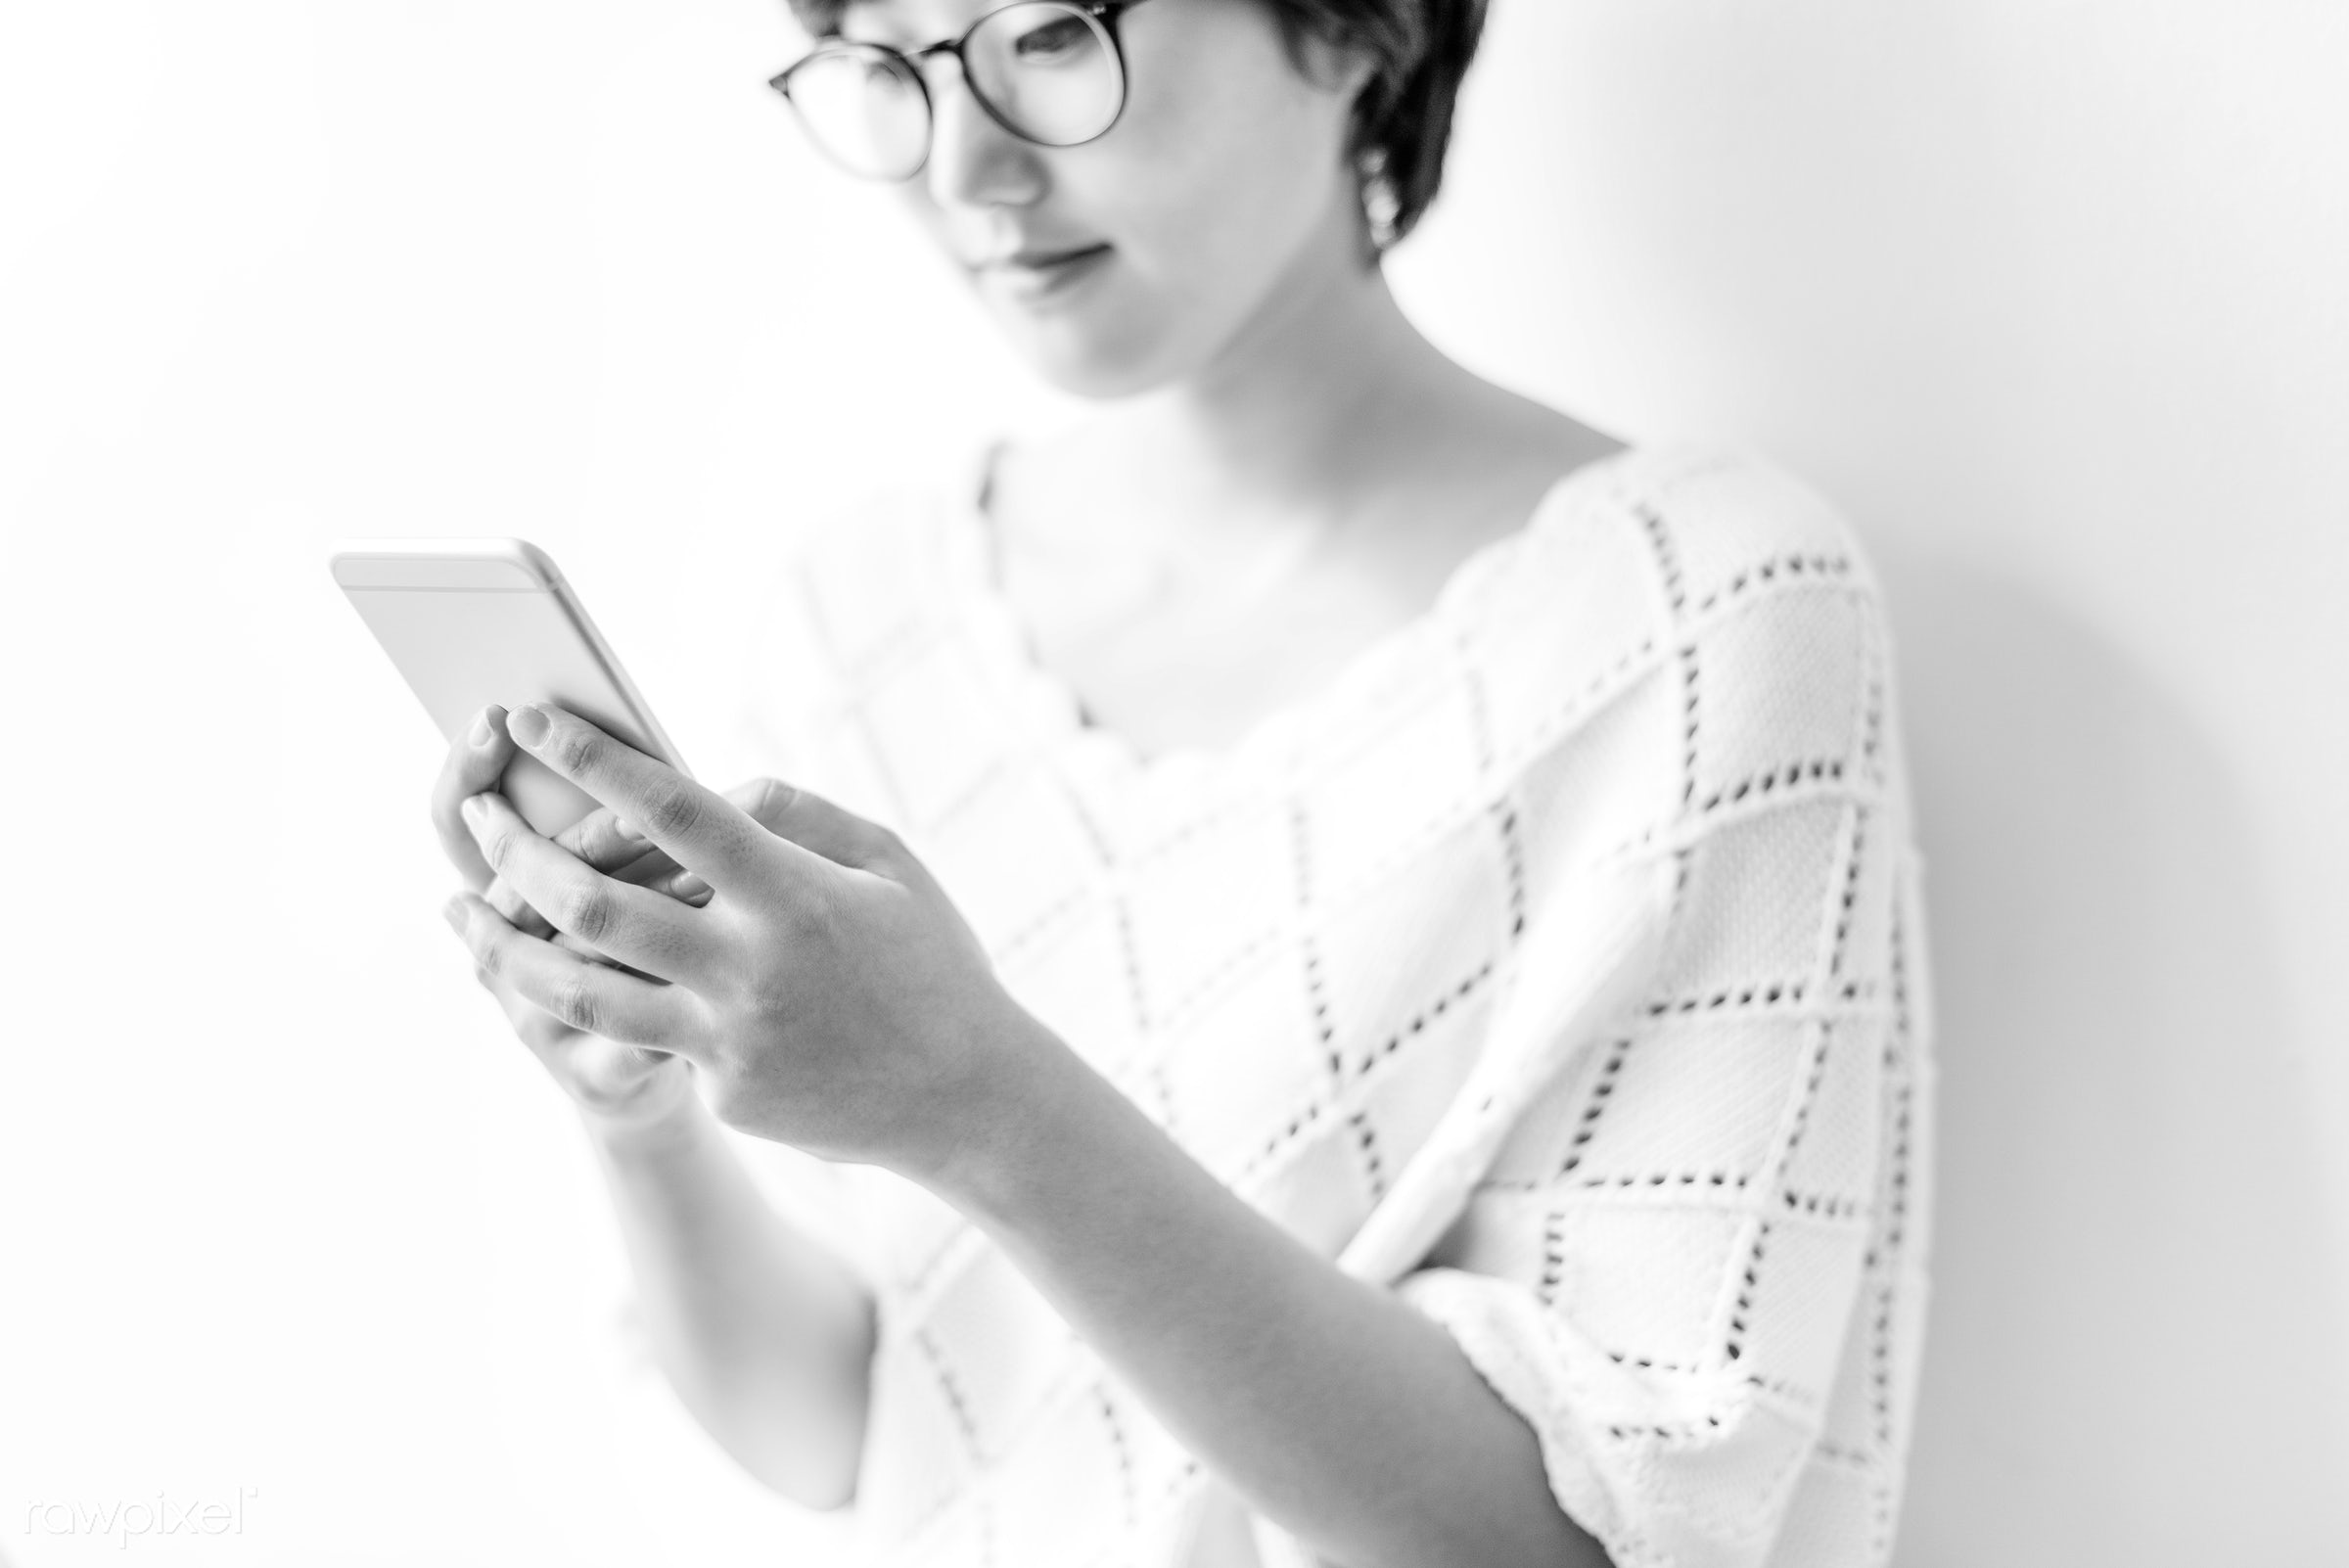 asian, asian ethnicity, bright, cellphone, chatting, communication, concentrating, connection, conversation, devices,...